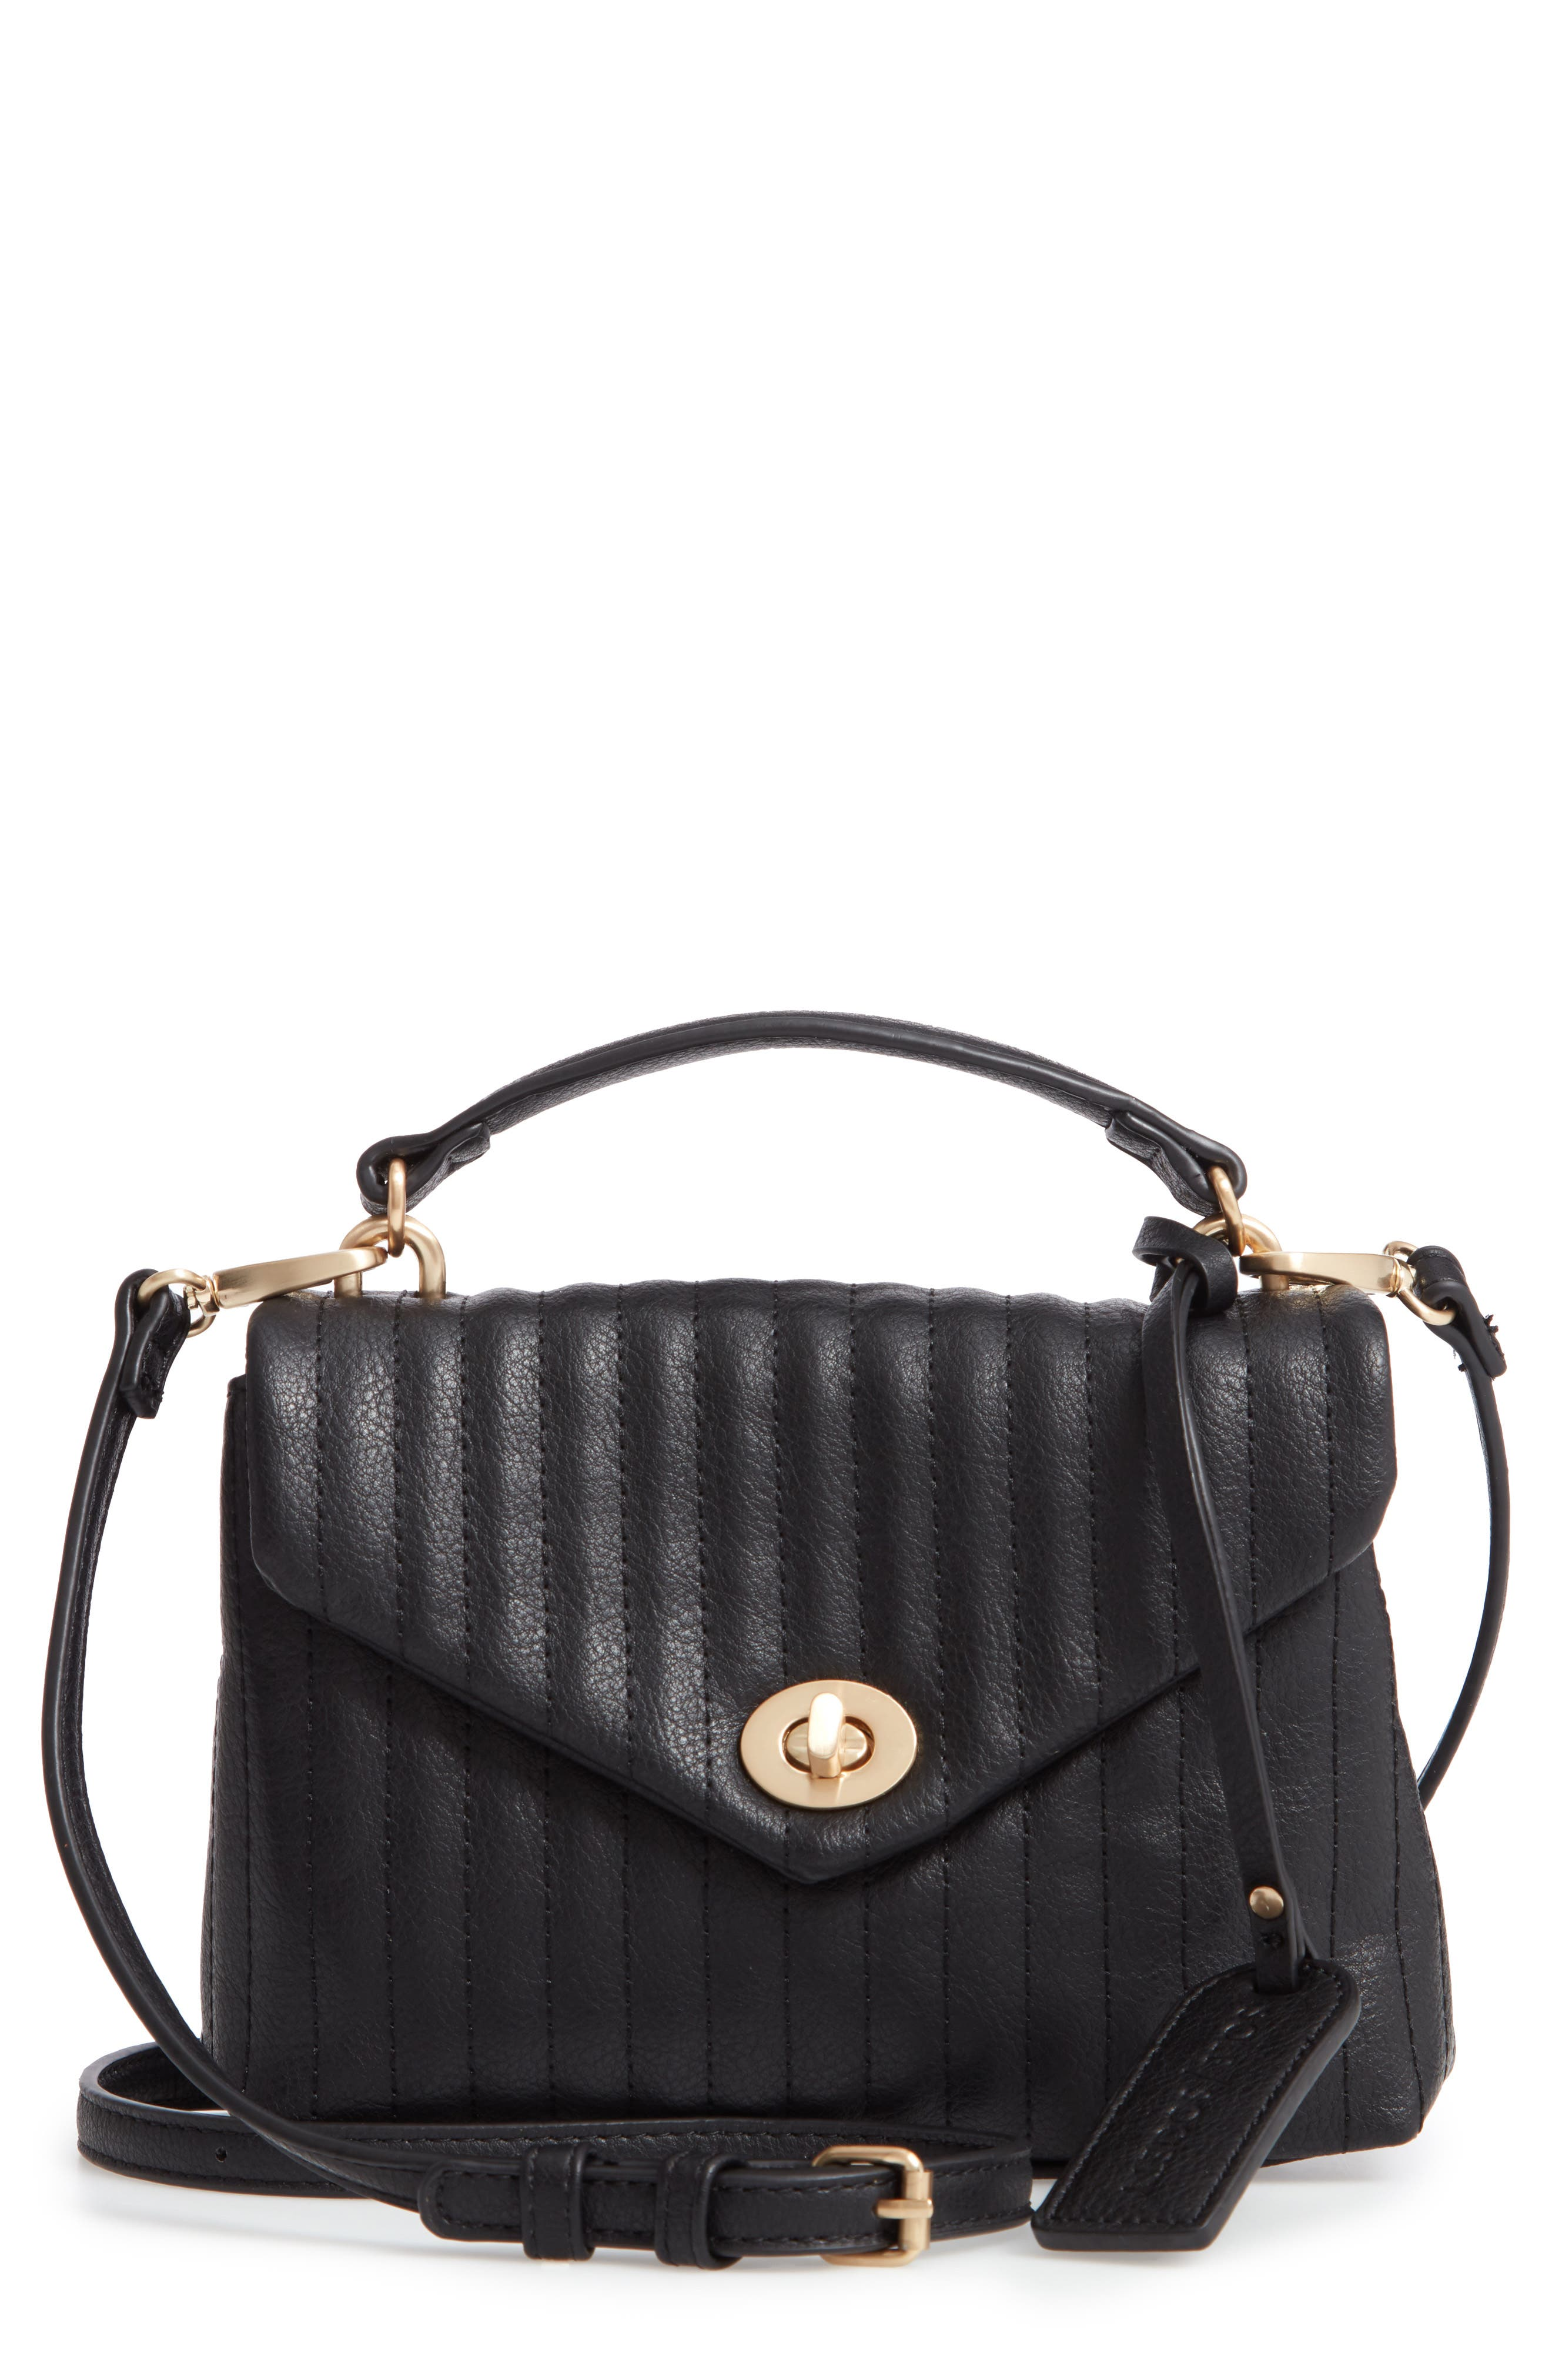 SOLE SOCIETY, Urche Faux Leather Crossbody Bag, Main thumbnail 1, color, BLACK